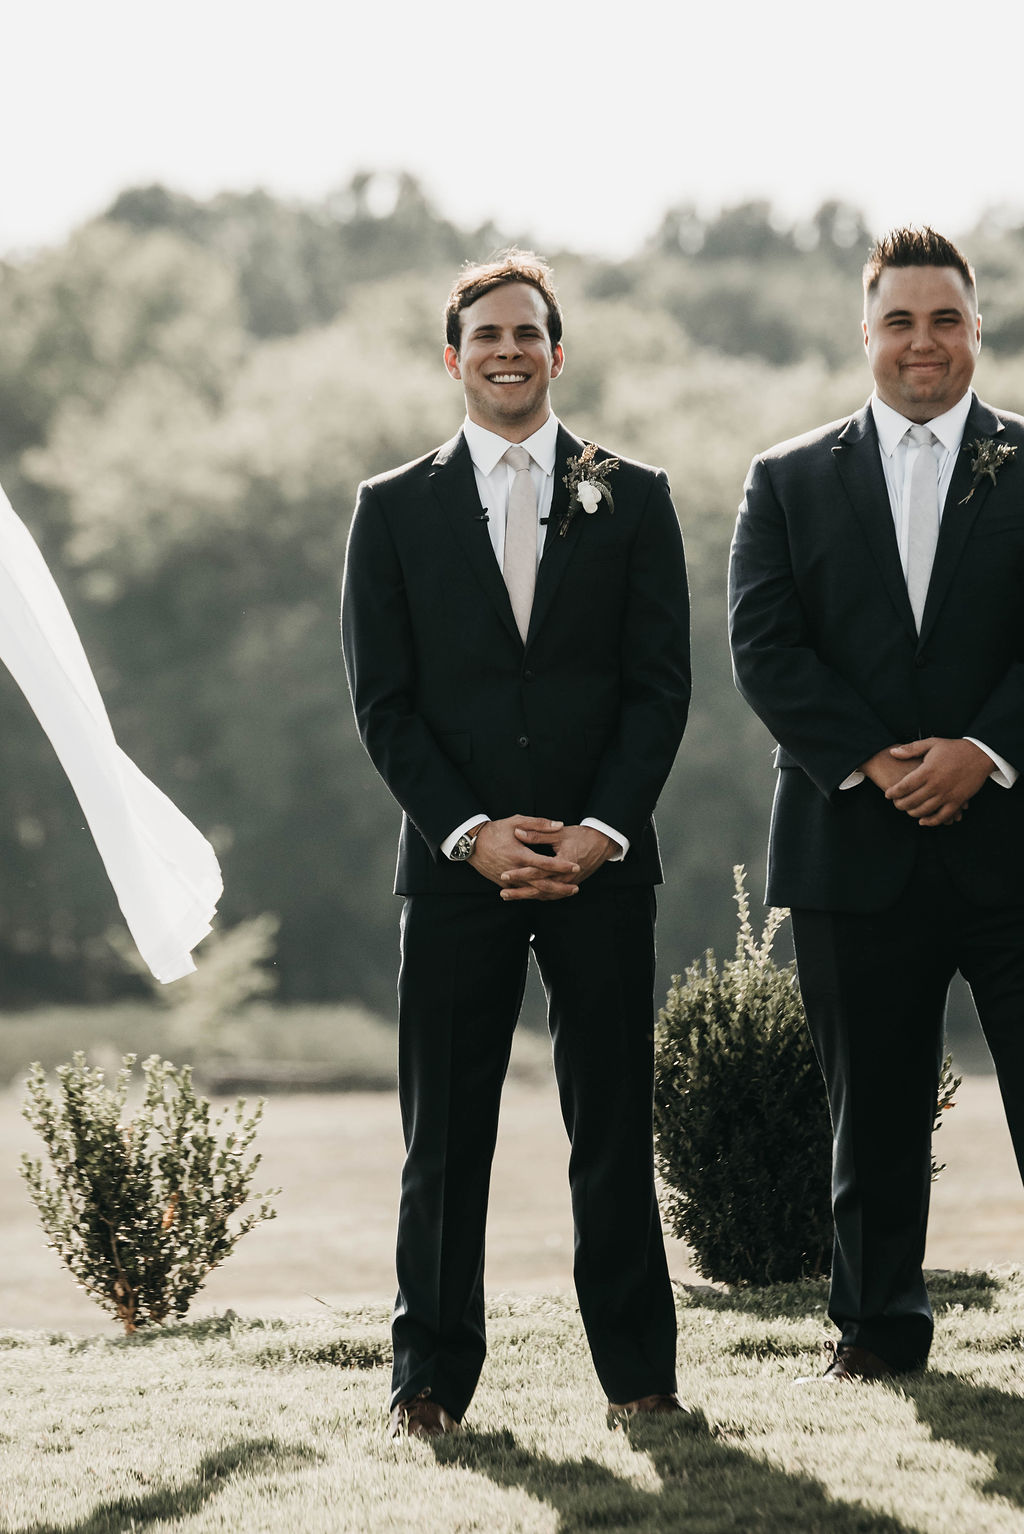 Groom's reaction to seeing bride walk down the aisle